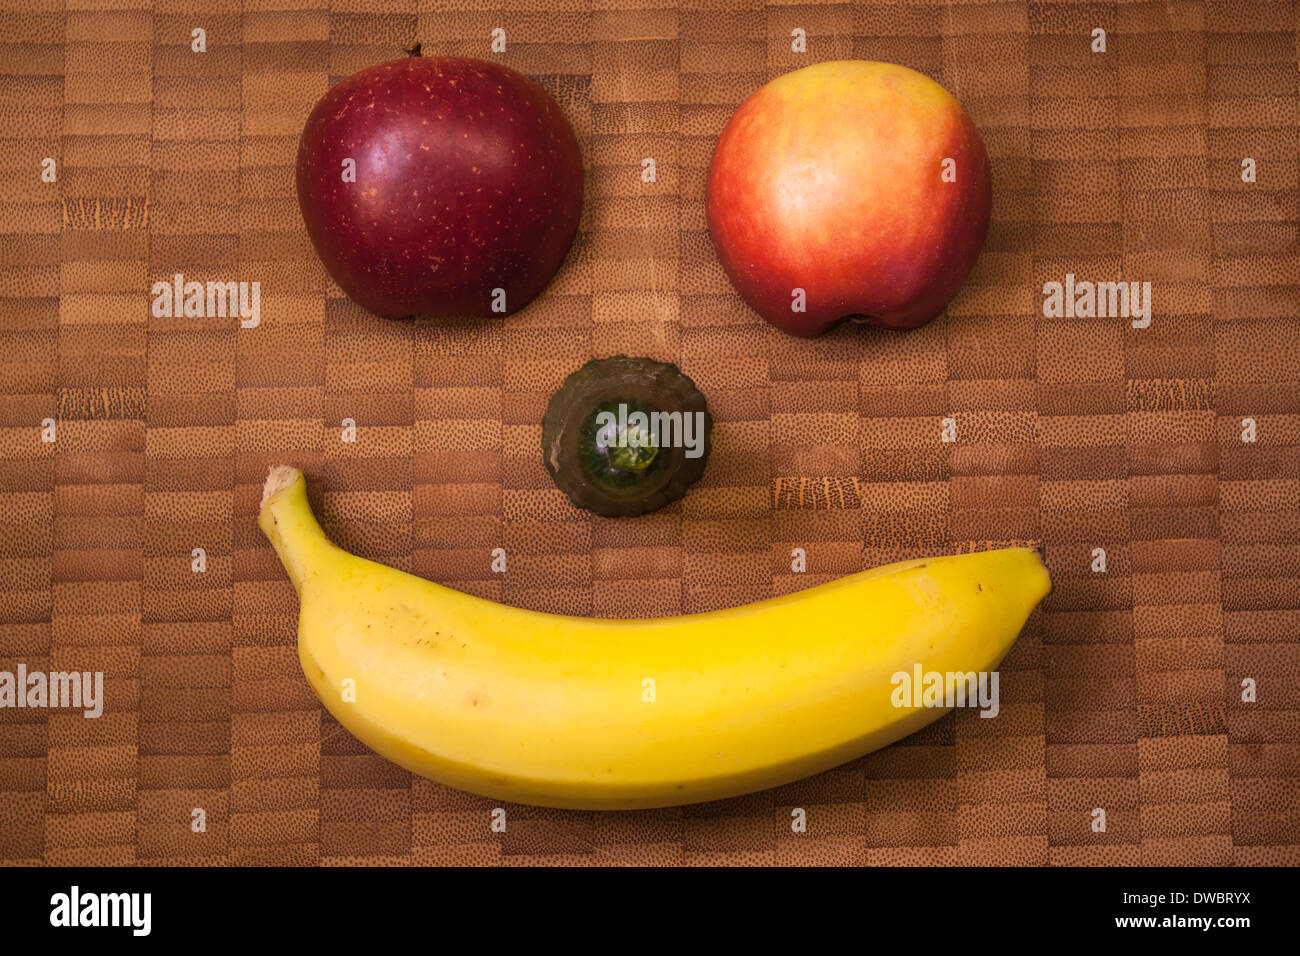 Banana On Table Funny fruit face with banana, cucumber, and apple on wooden table, close up